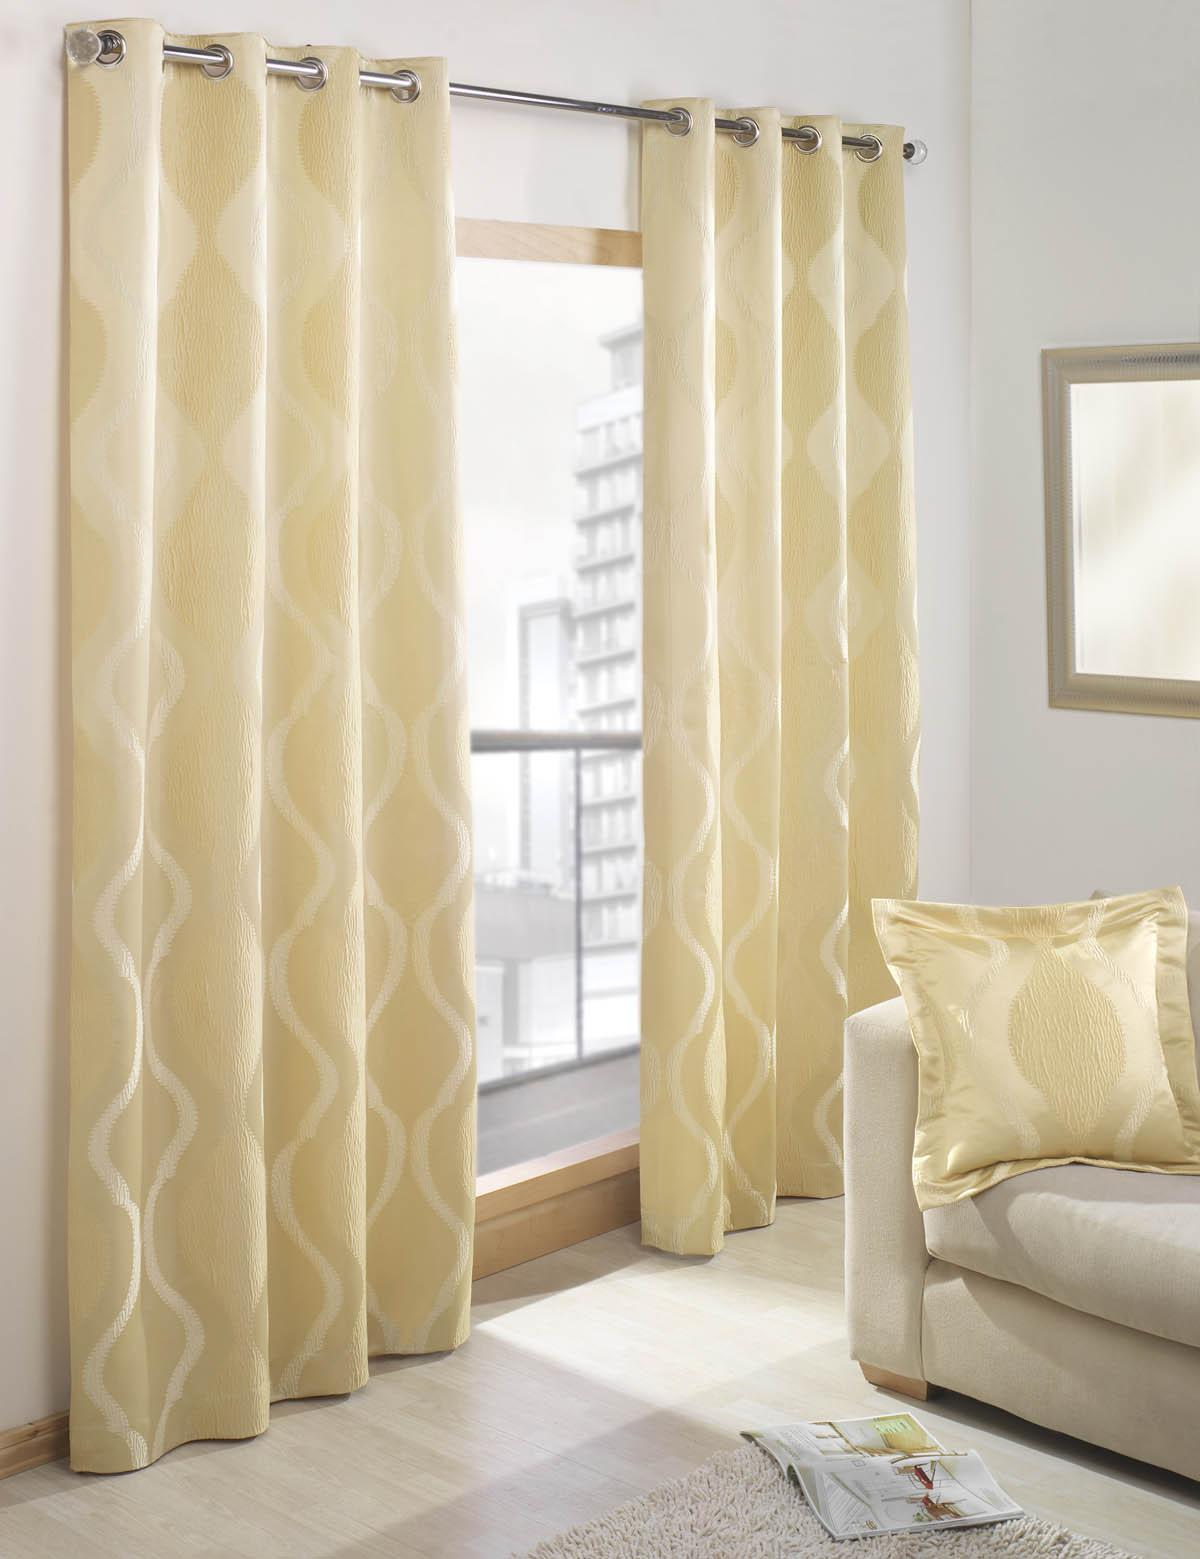 Spotlight Eyelet Curtains Homebase Milazzo 6 Seater Rattan Garden Furniture Set